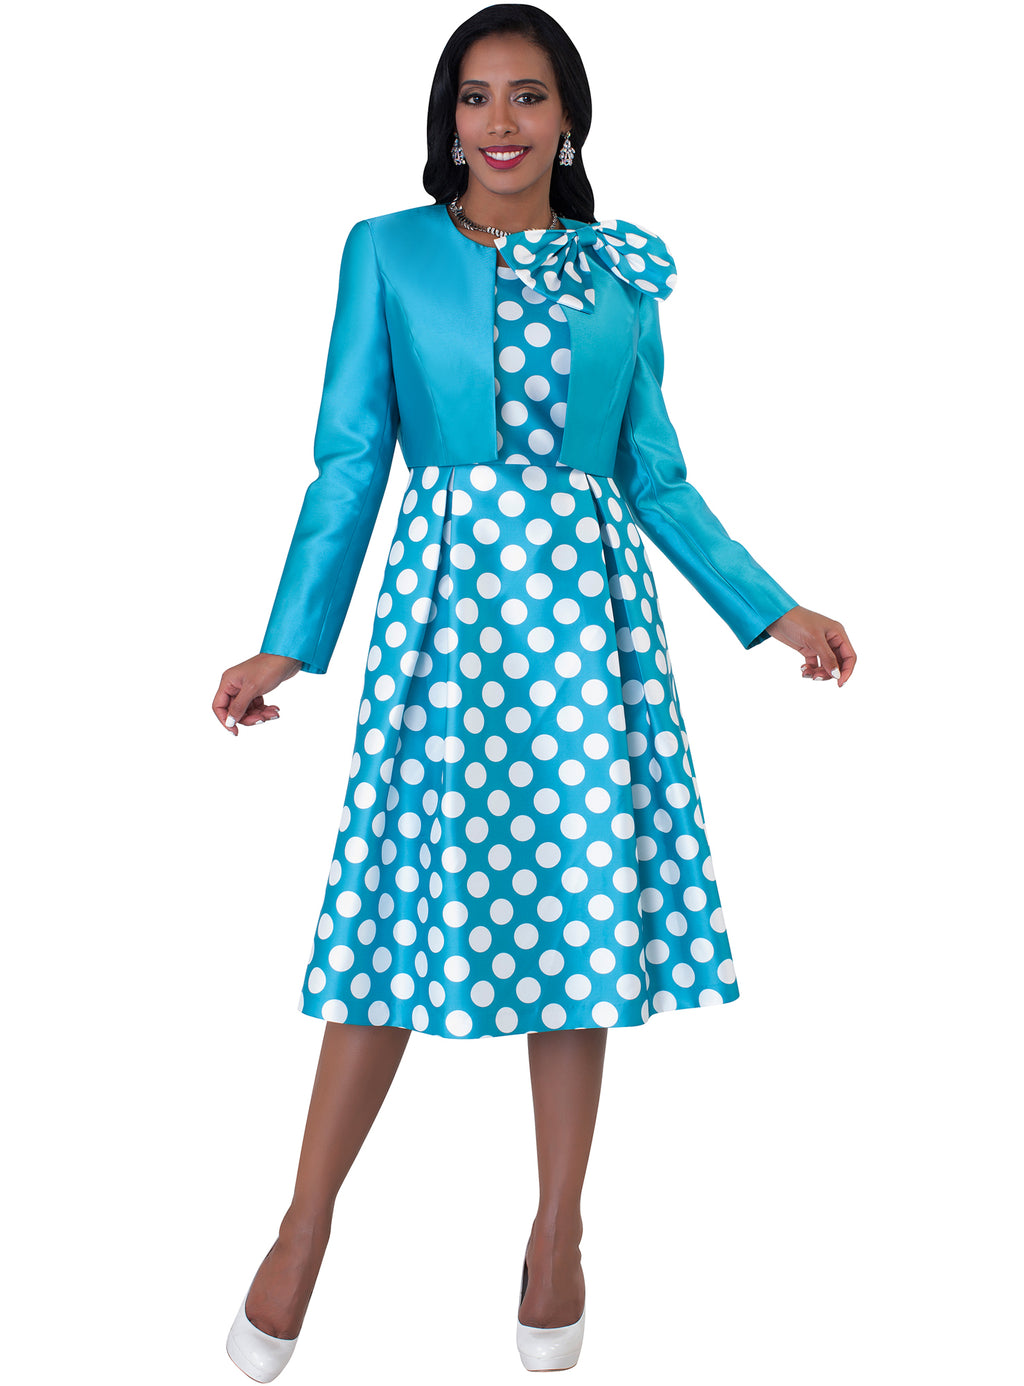 Polka Dot Dress with Bow